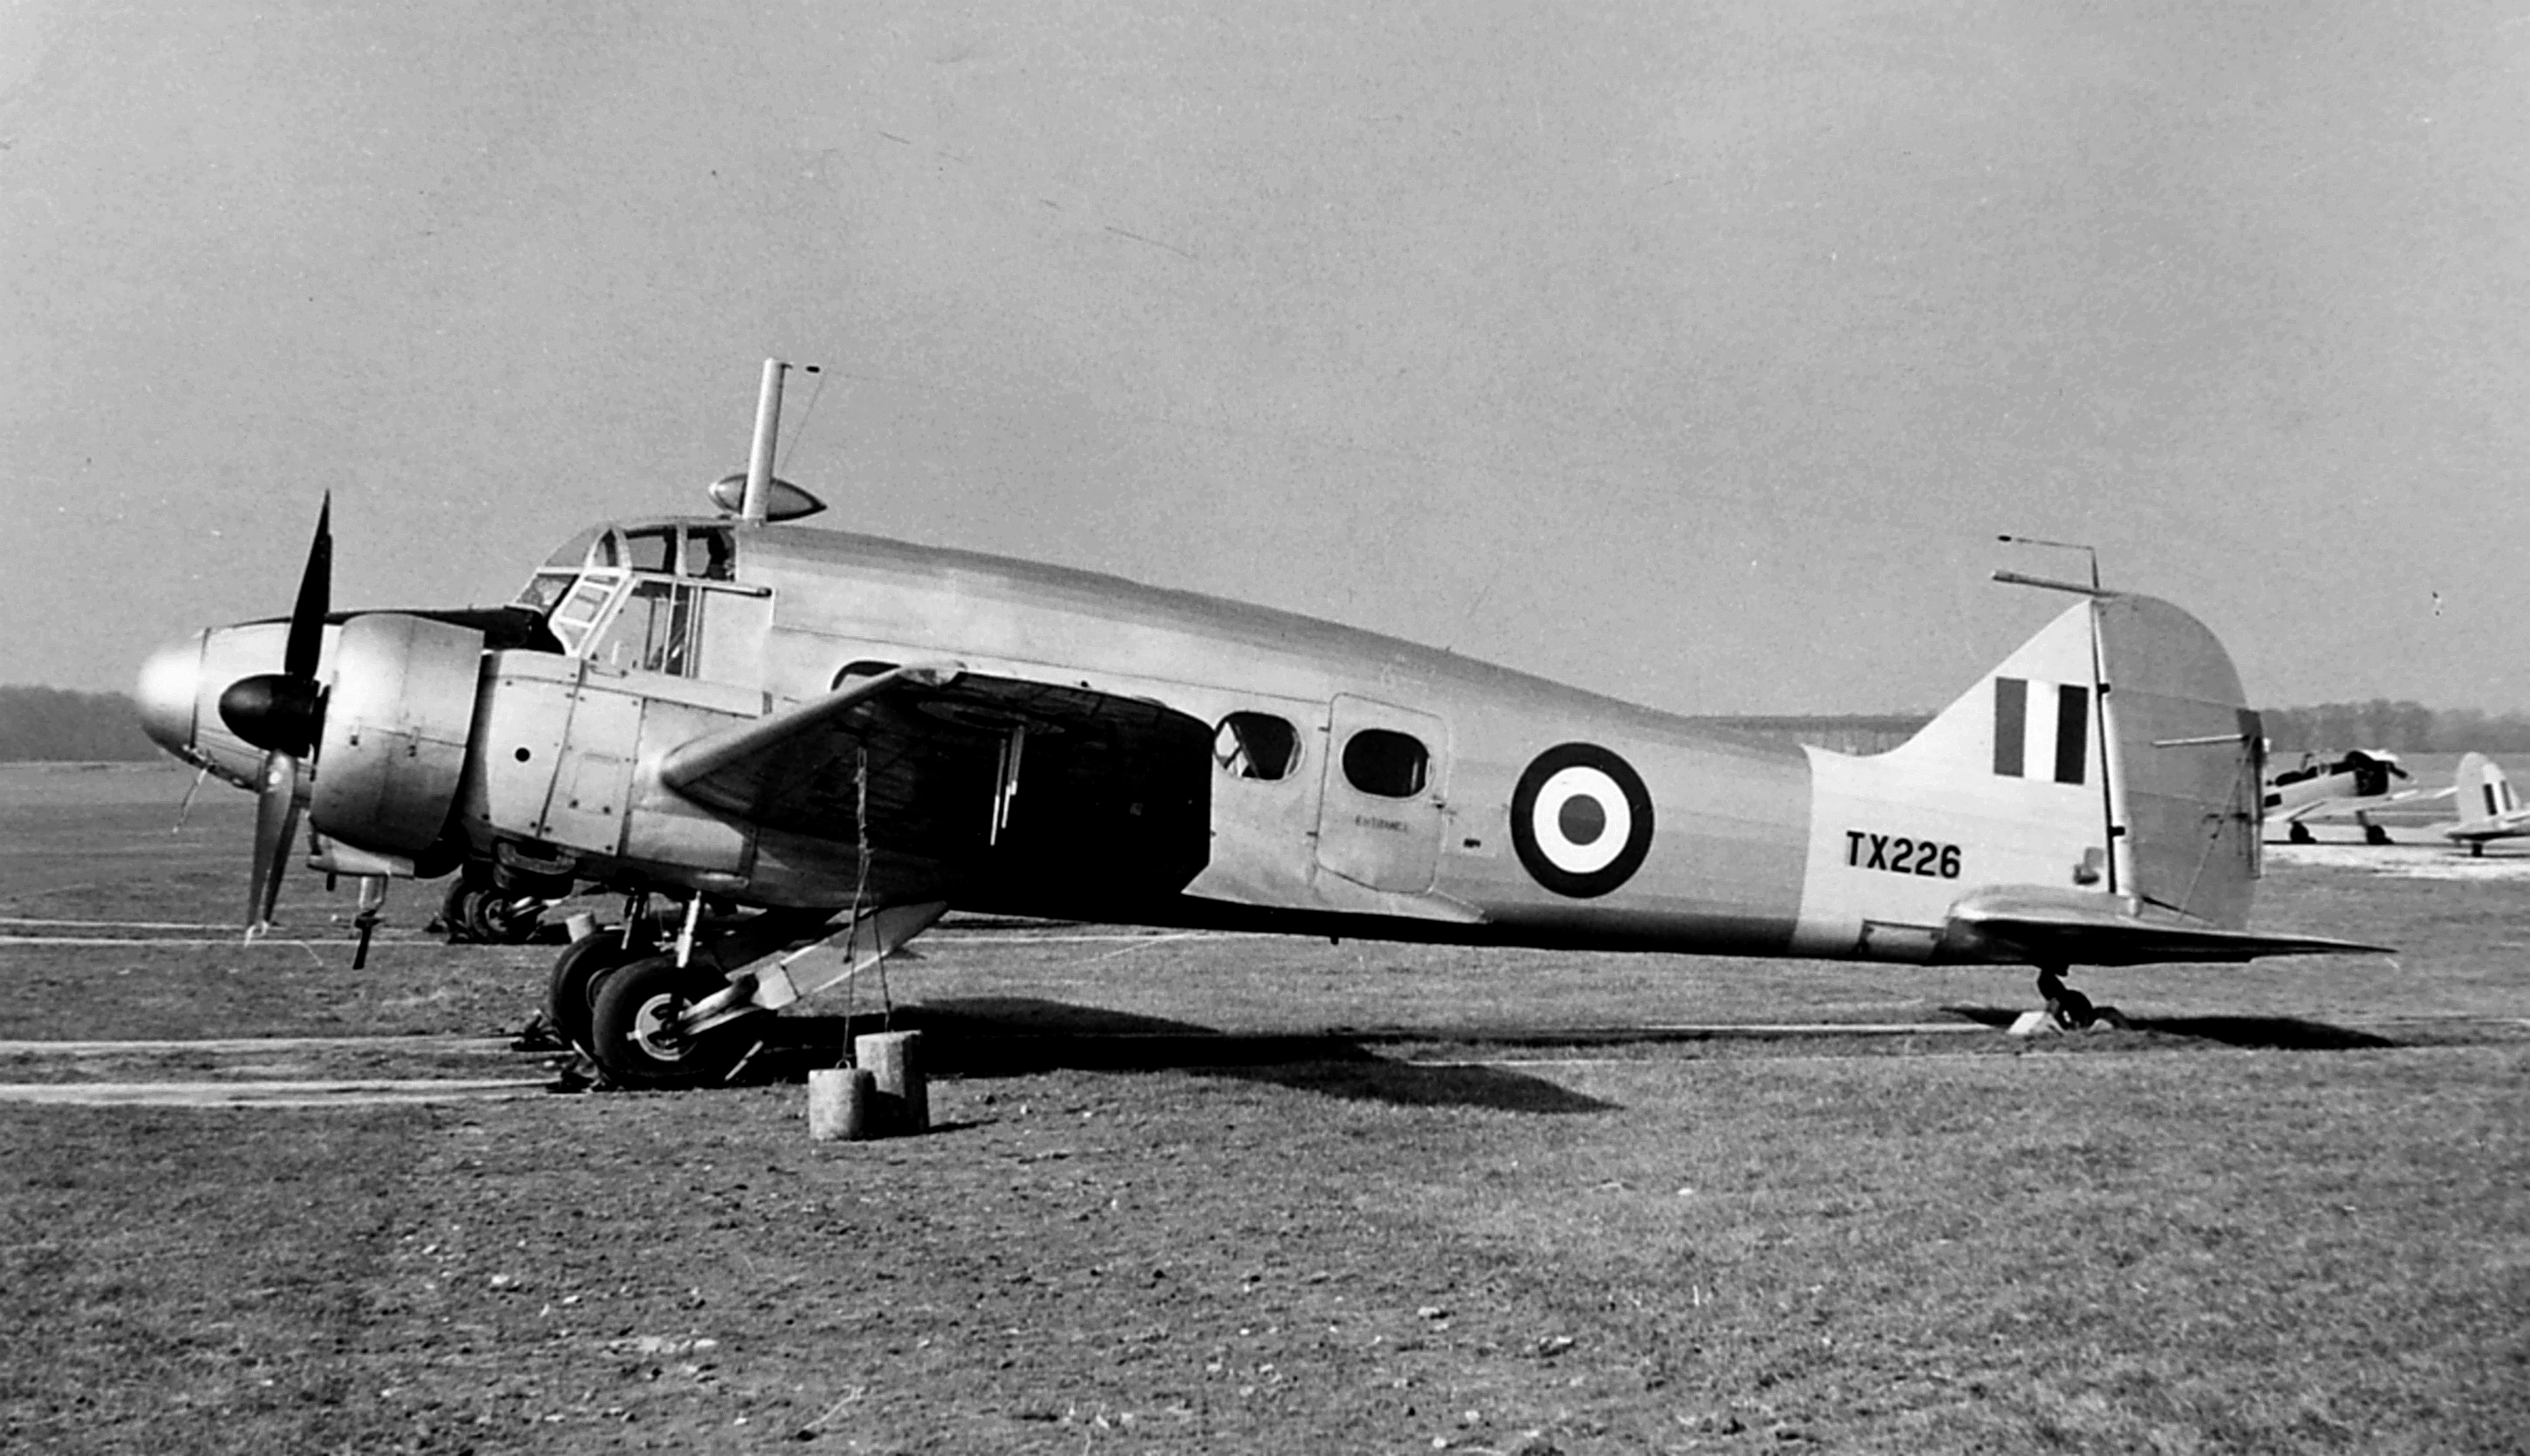 Anson C19 TX226 photographed with Flying Training Command Communications Squadron at RAF White Waltham in 1962.